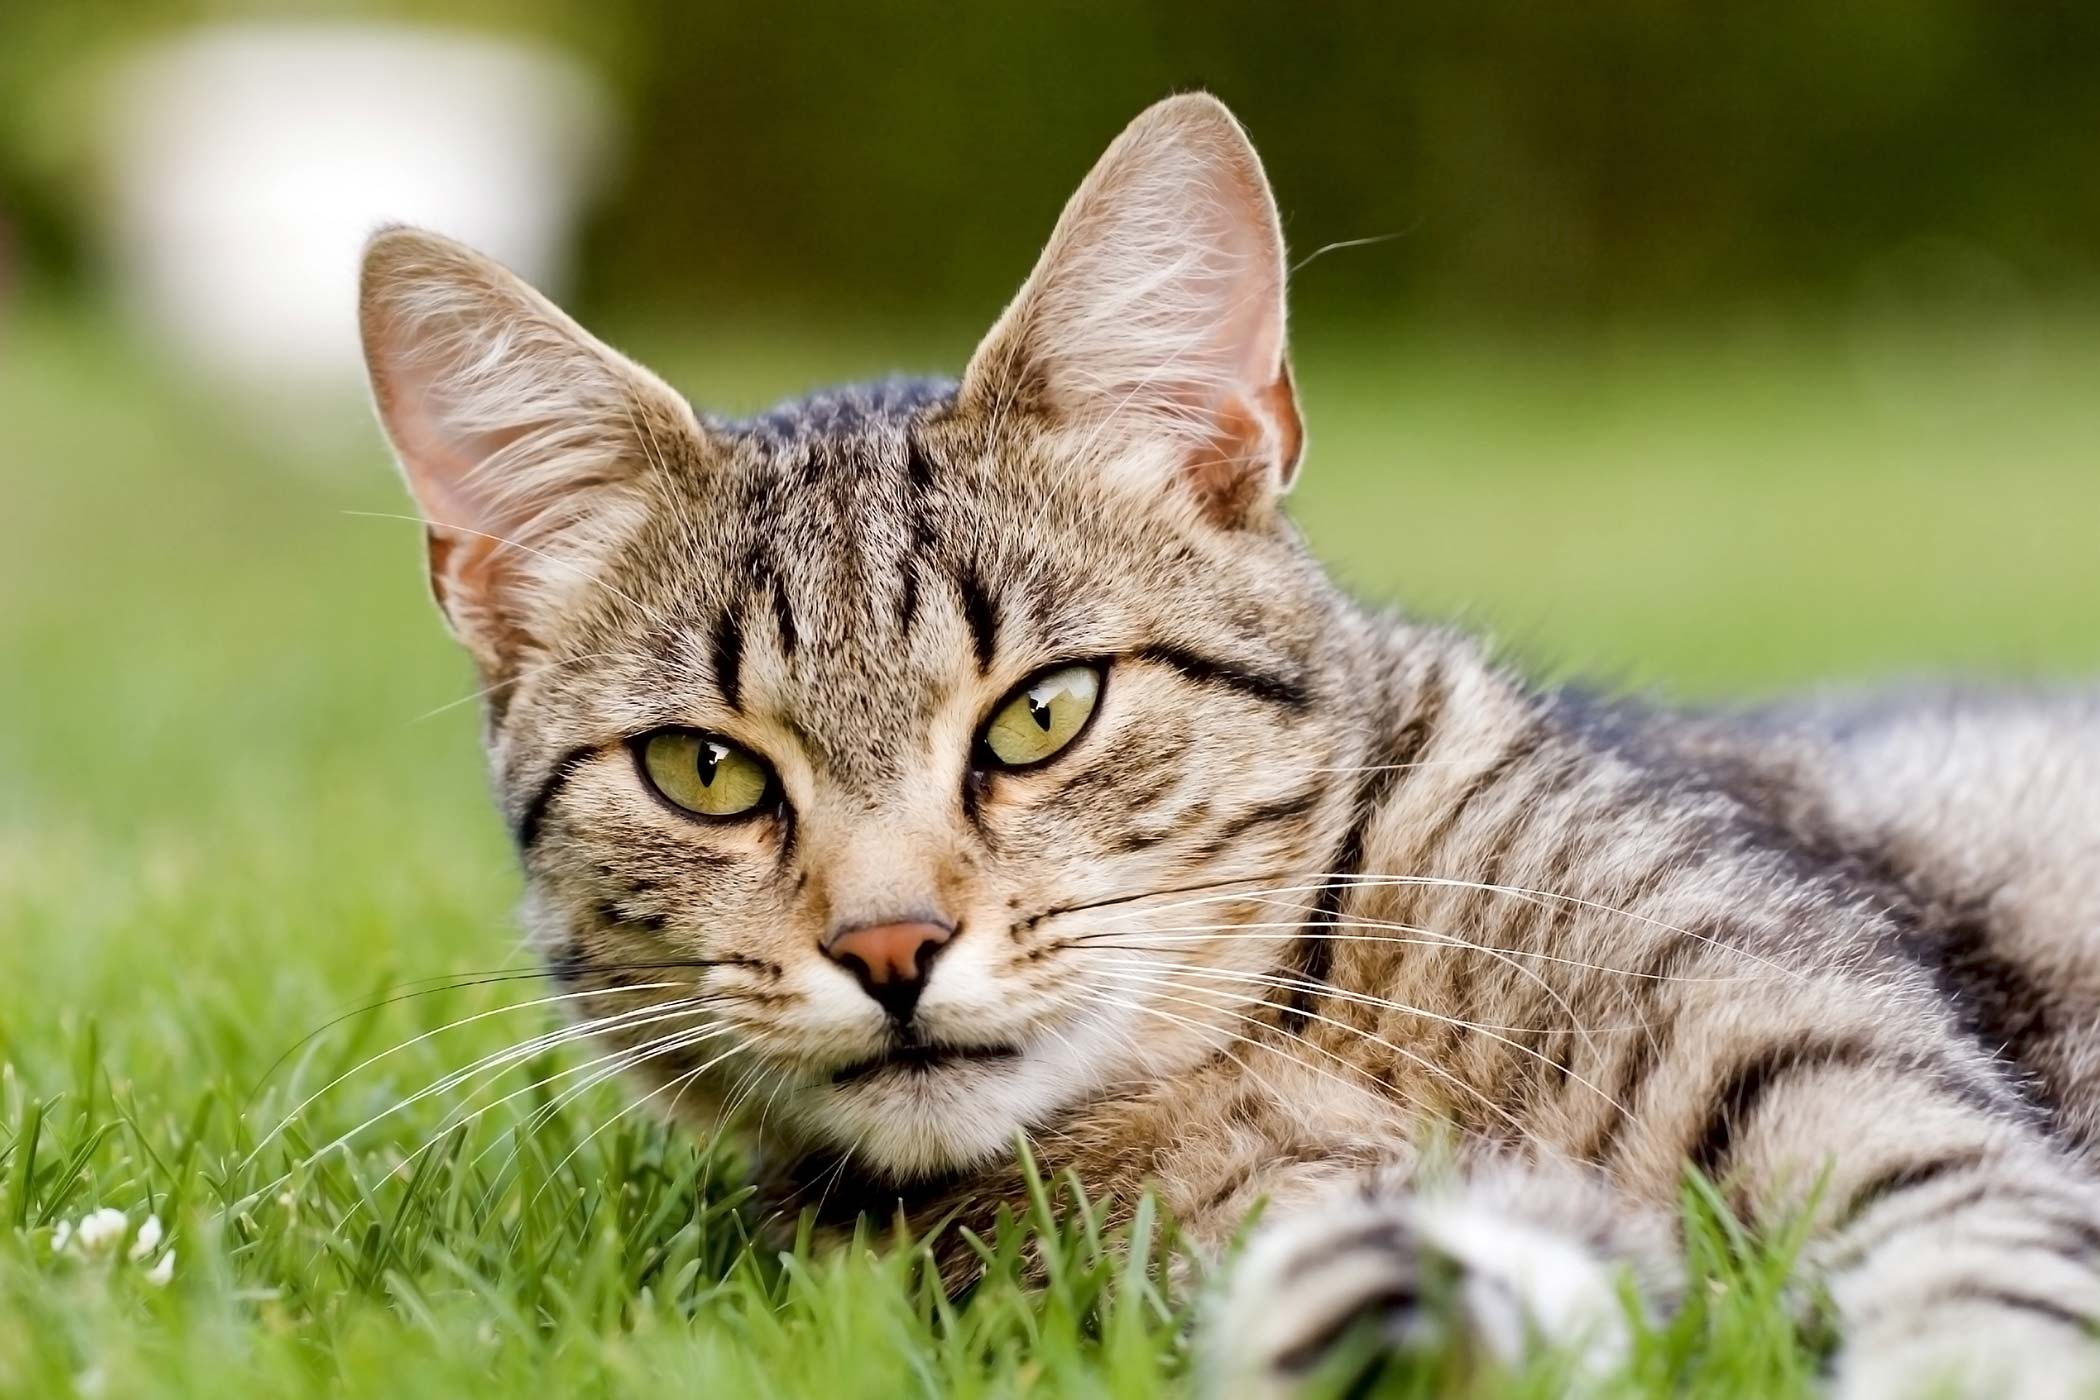 Streptococcal Infection in Cats